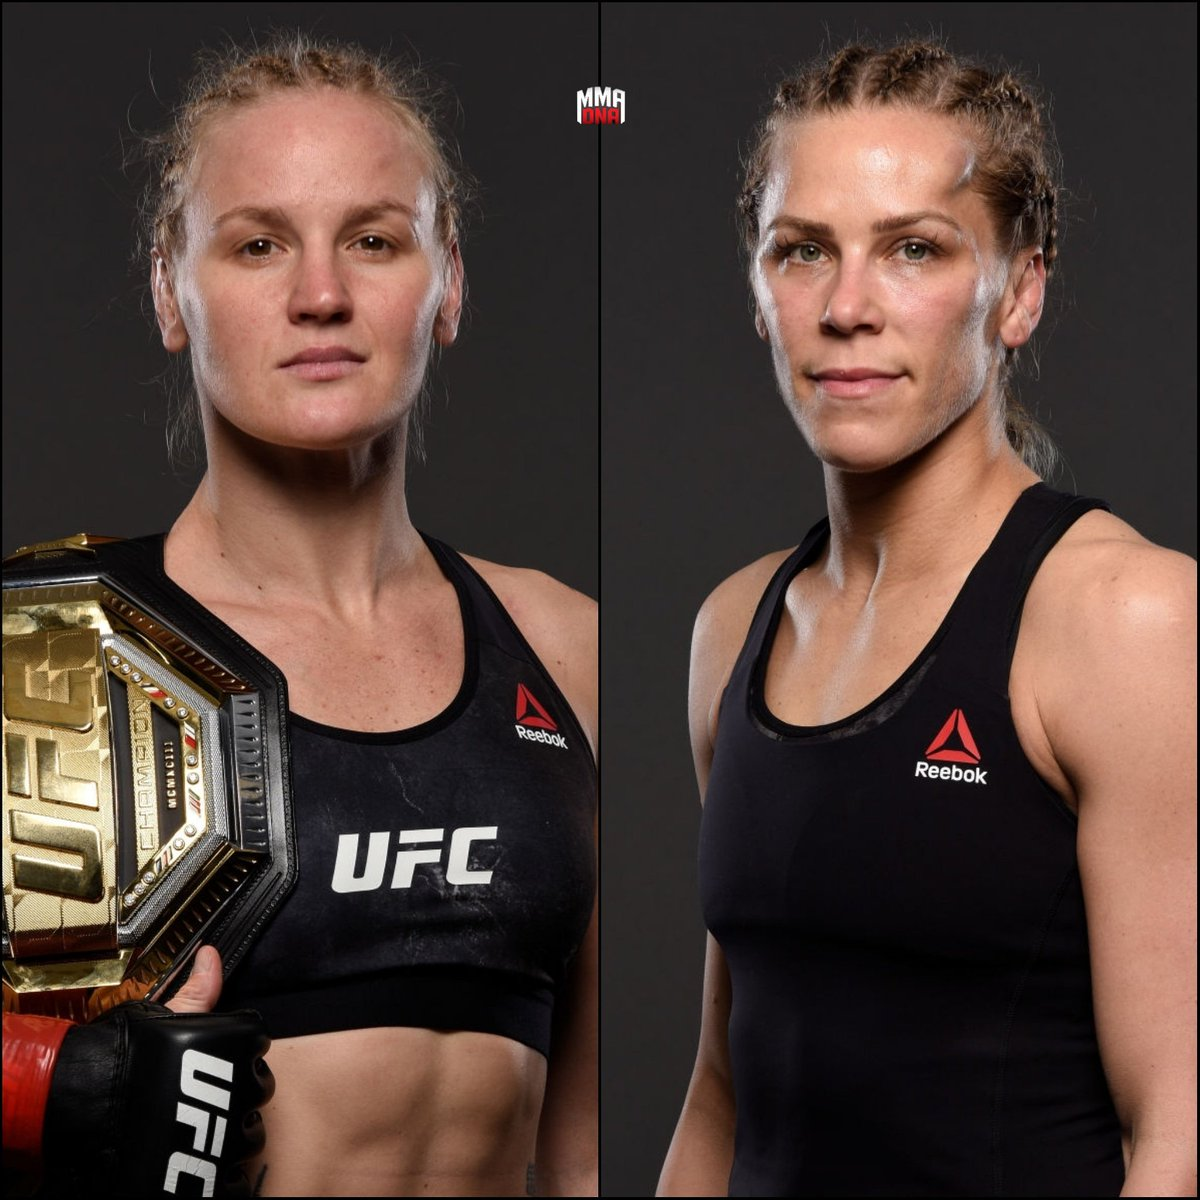 Champion Valentina Shevchenko will fight Katlyn Chookagian at #UFC247 in Houston, Texas (Feb. 8, 2020). (per @espnmma) #UFC #UFCHouston #MMA #UFCESPN #WMMA #WFLYW